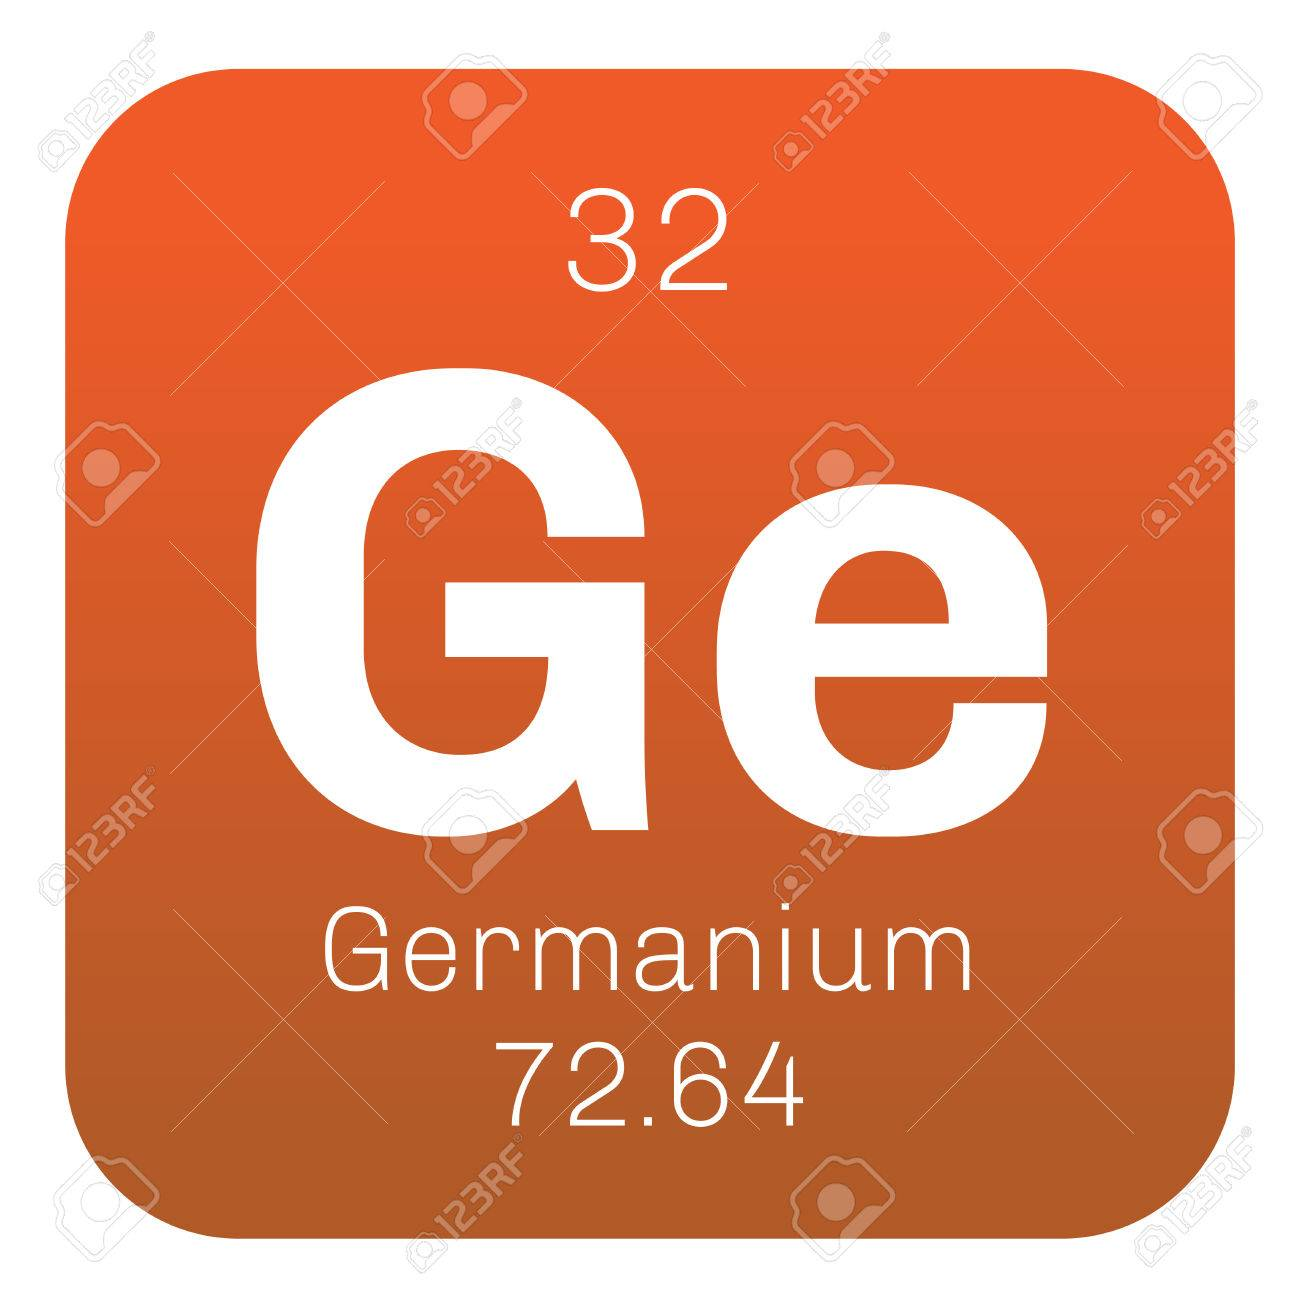 Germanium chemical element metalloid in carbon group a chemical element of periodic table germanium chemical element metalloid in carbon group a semiconductor colored icon with atomic urtaz Choice Image